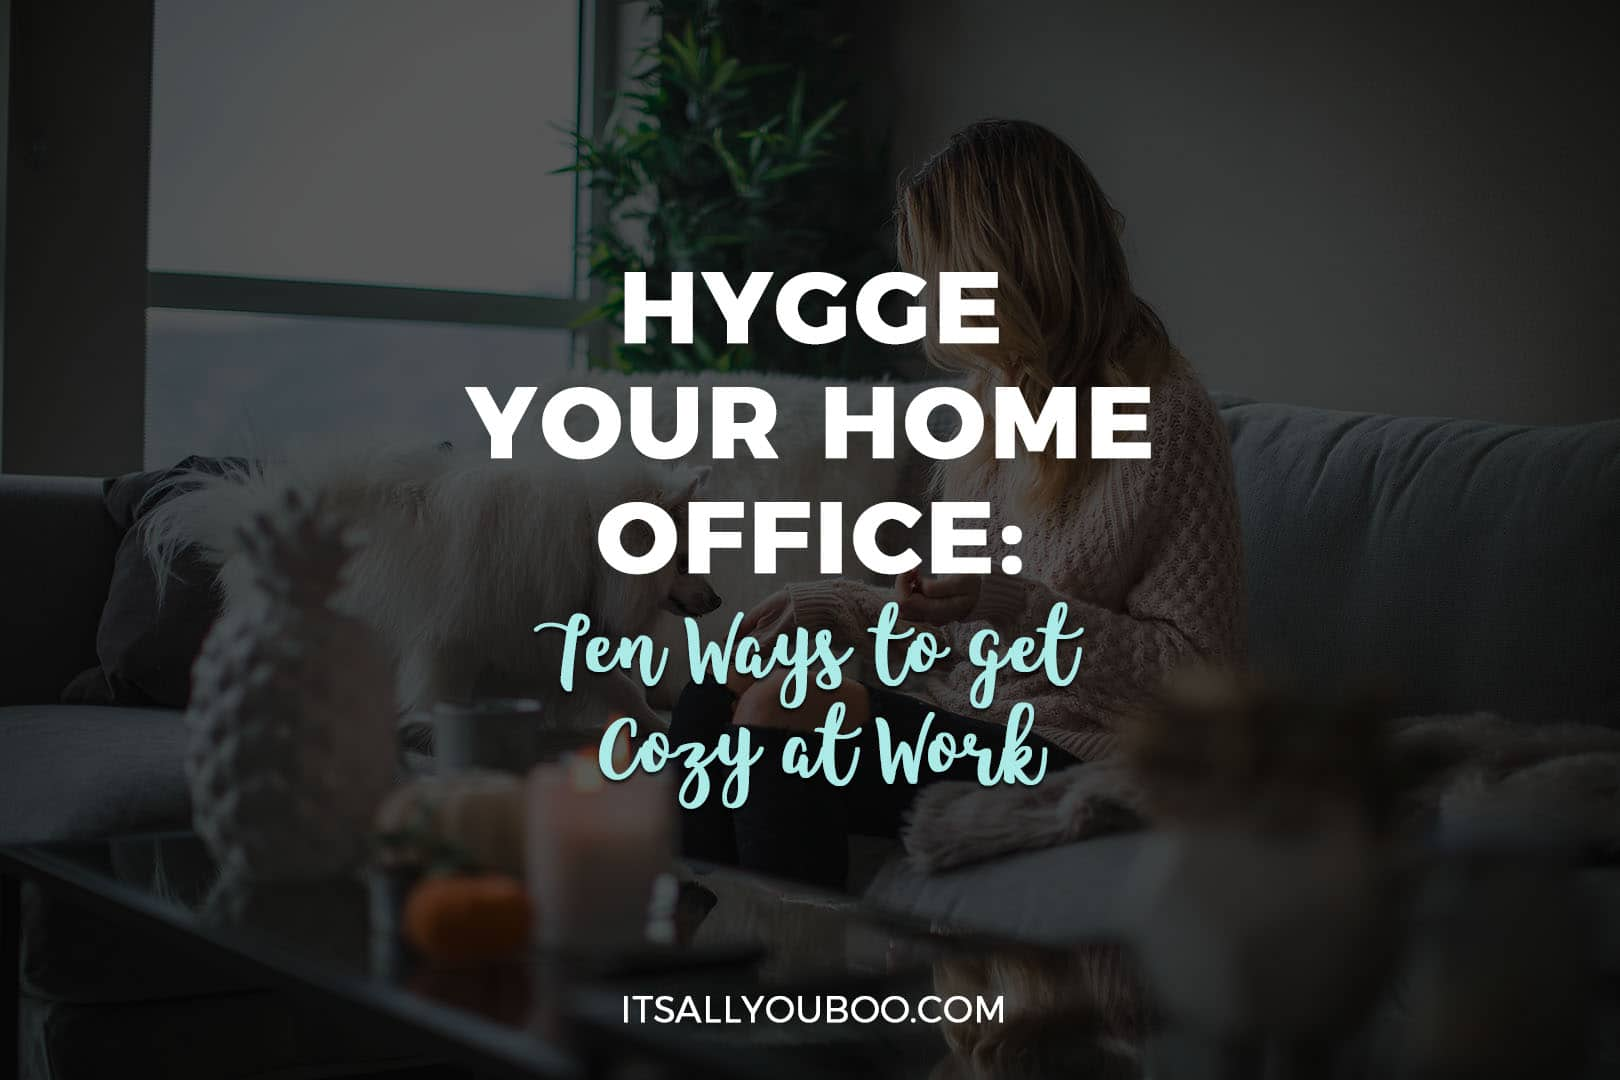 Hygge You Home Office: Ten Ways to get cozy at work